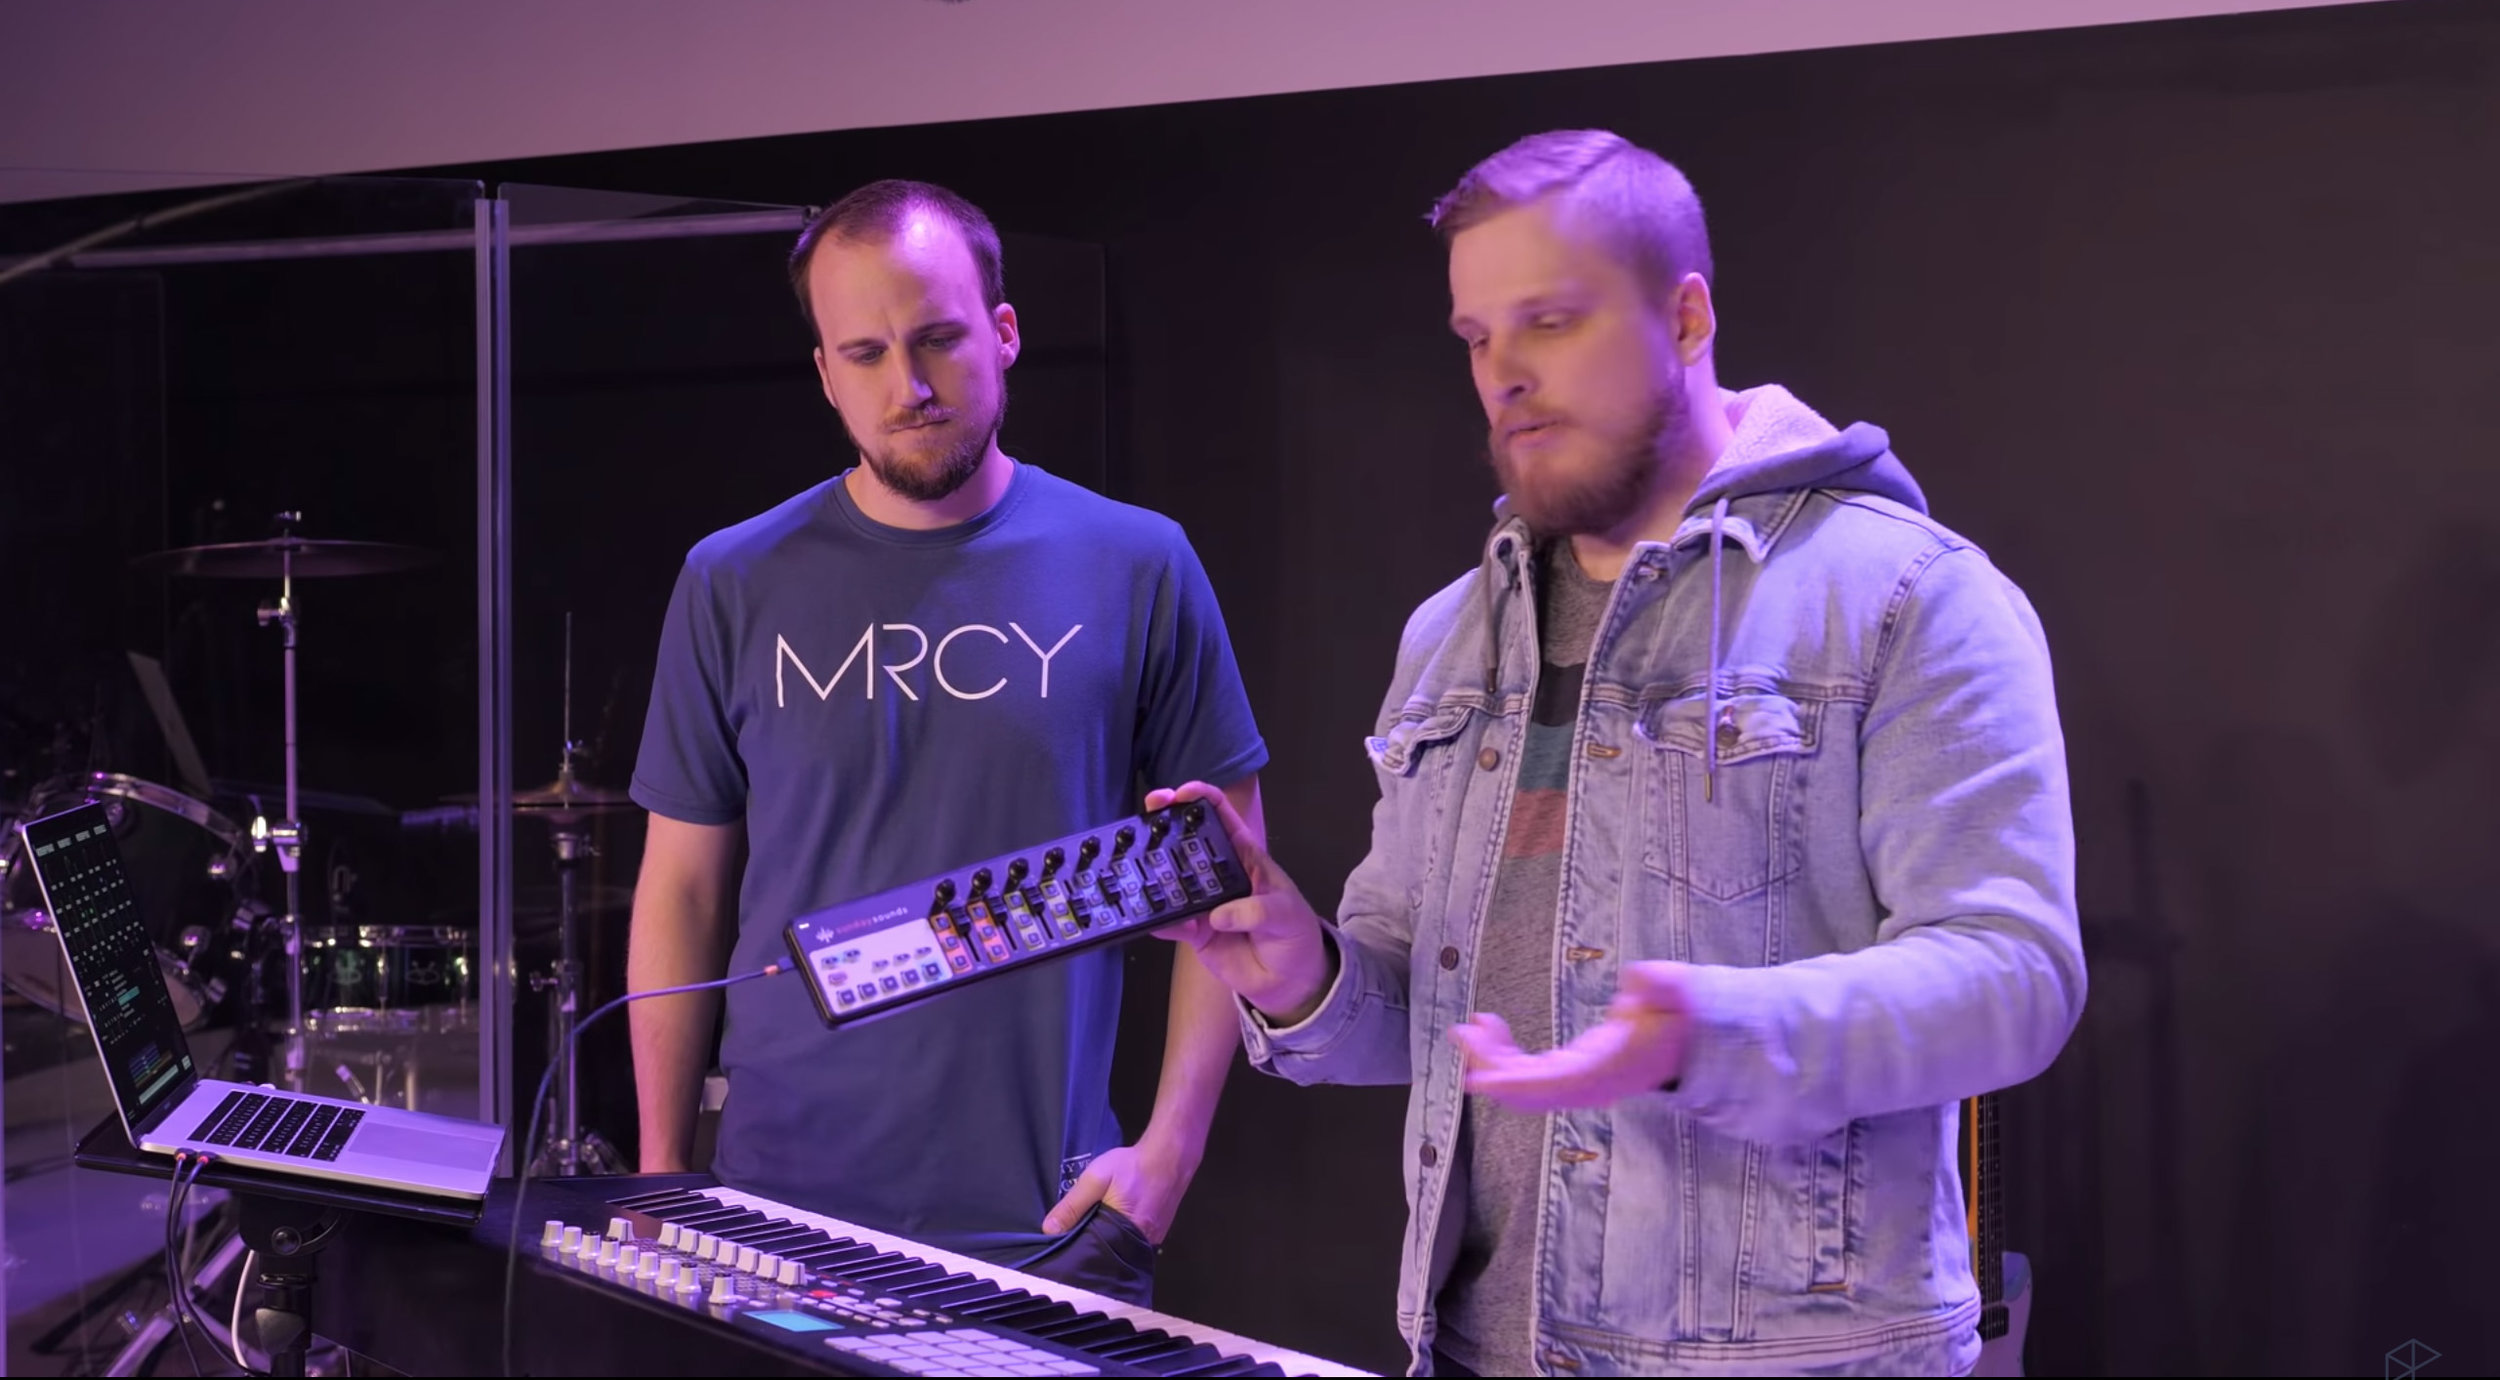 How to Build a Worship Keyboard Rig in 2019 — Churchfront with Jake